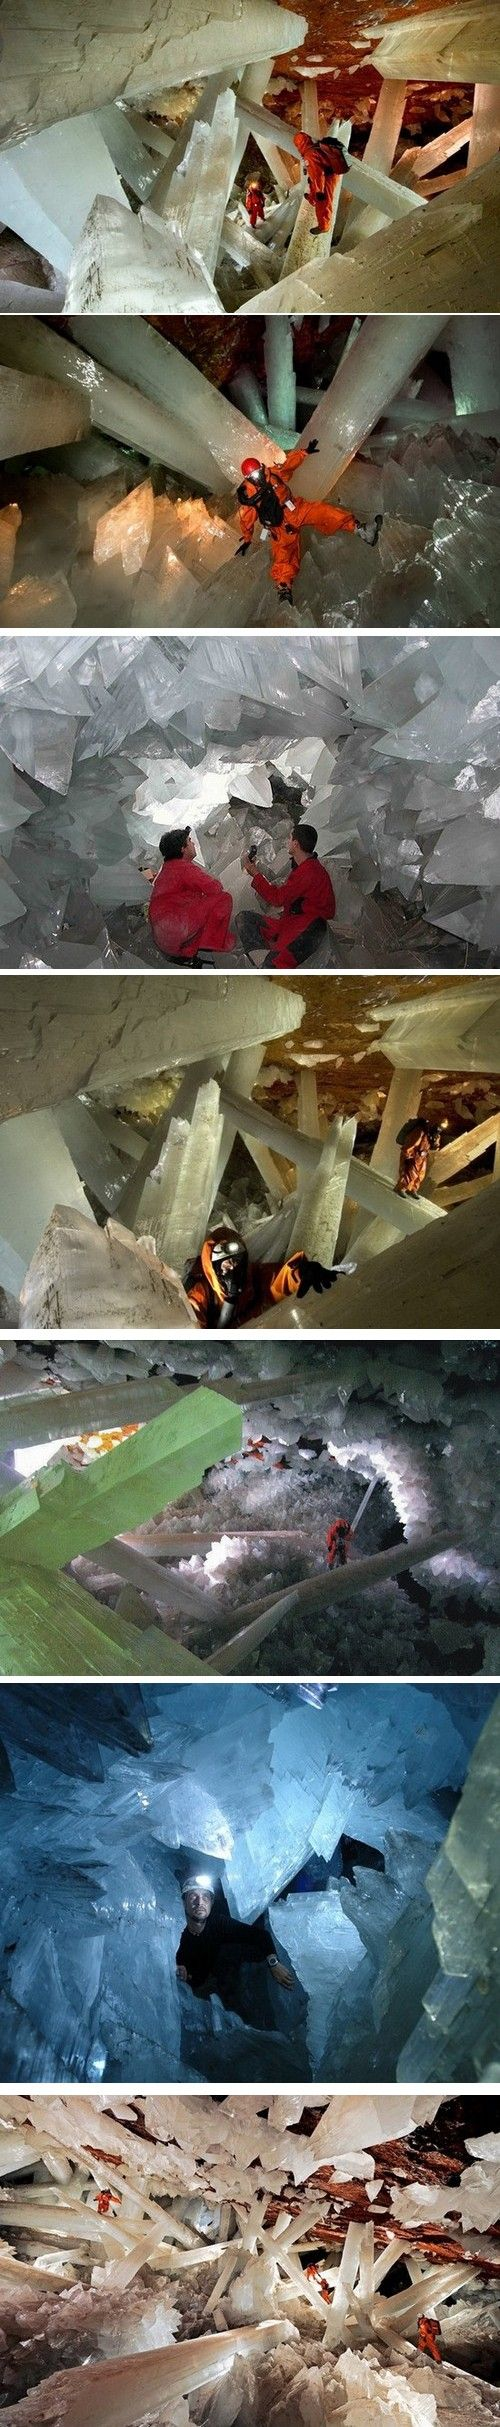 Cave of the Crystals is connected to the Naica Mine 980 ft. below the surface in Naica, Mexico. The main chamber contains giant gypsum crystals, some of the largest natural crystals ever found. The largest crystal found to date is 39 ft. long, 13 ft. in diameter and weighs 55 tons. The cave is extremely hot, with air temperatures reaching up to 136 °F with 90 - 99 percent humidity. Without proper protection, people can only endure about 10 min. of exposure at a time.